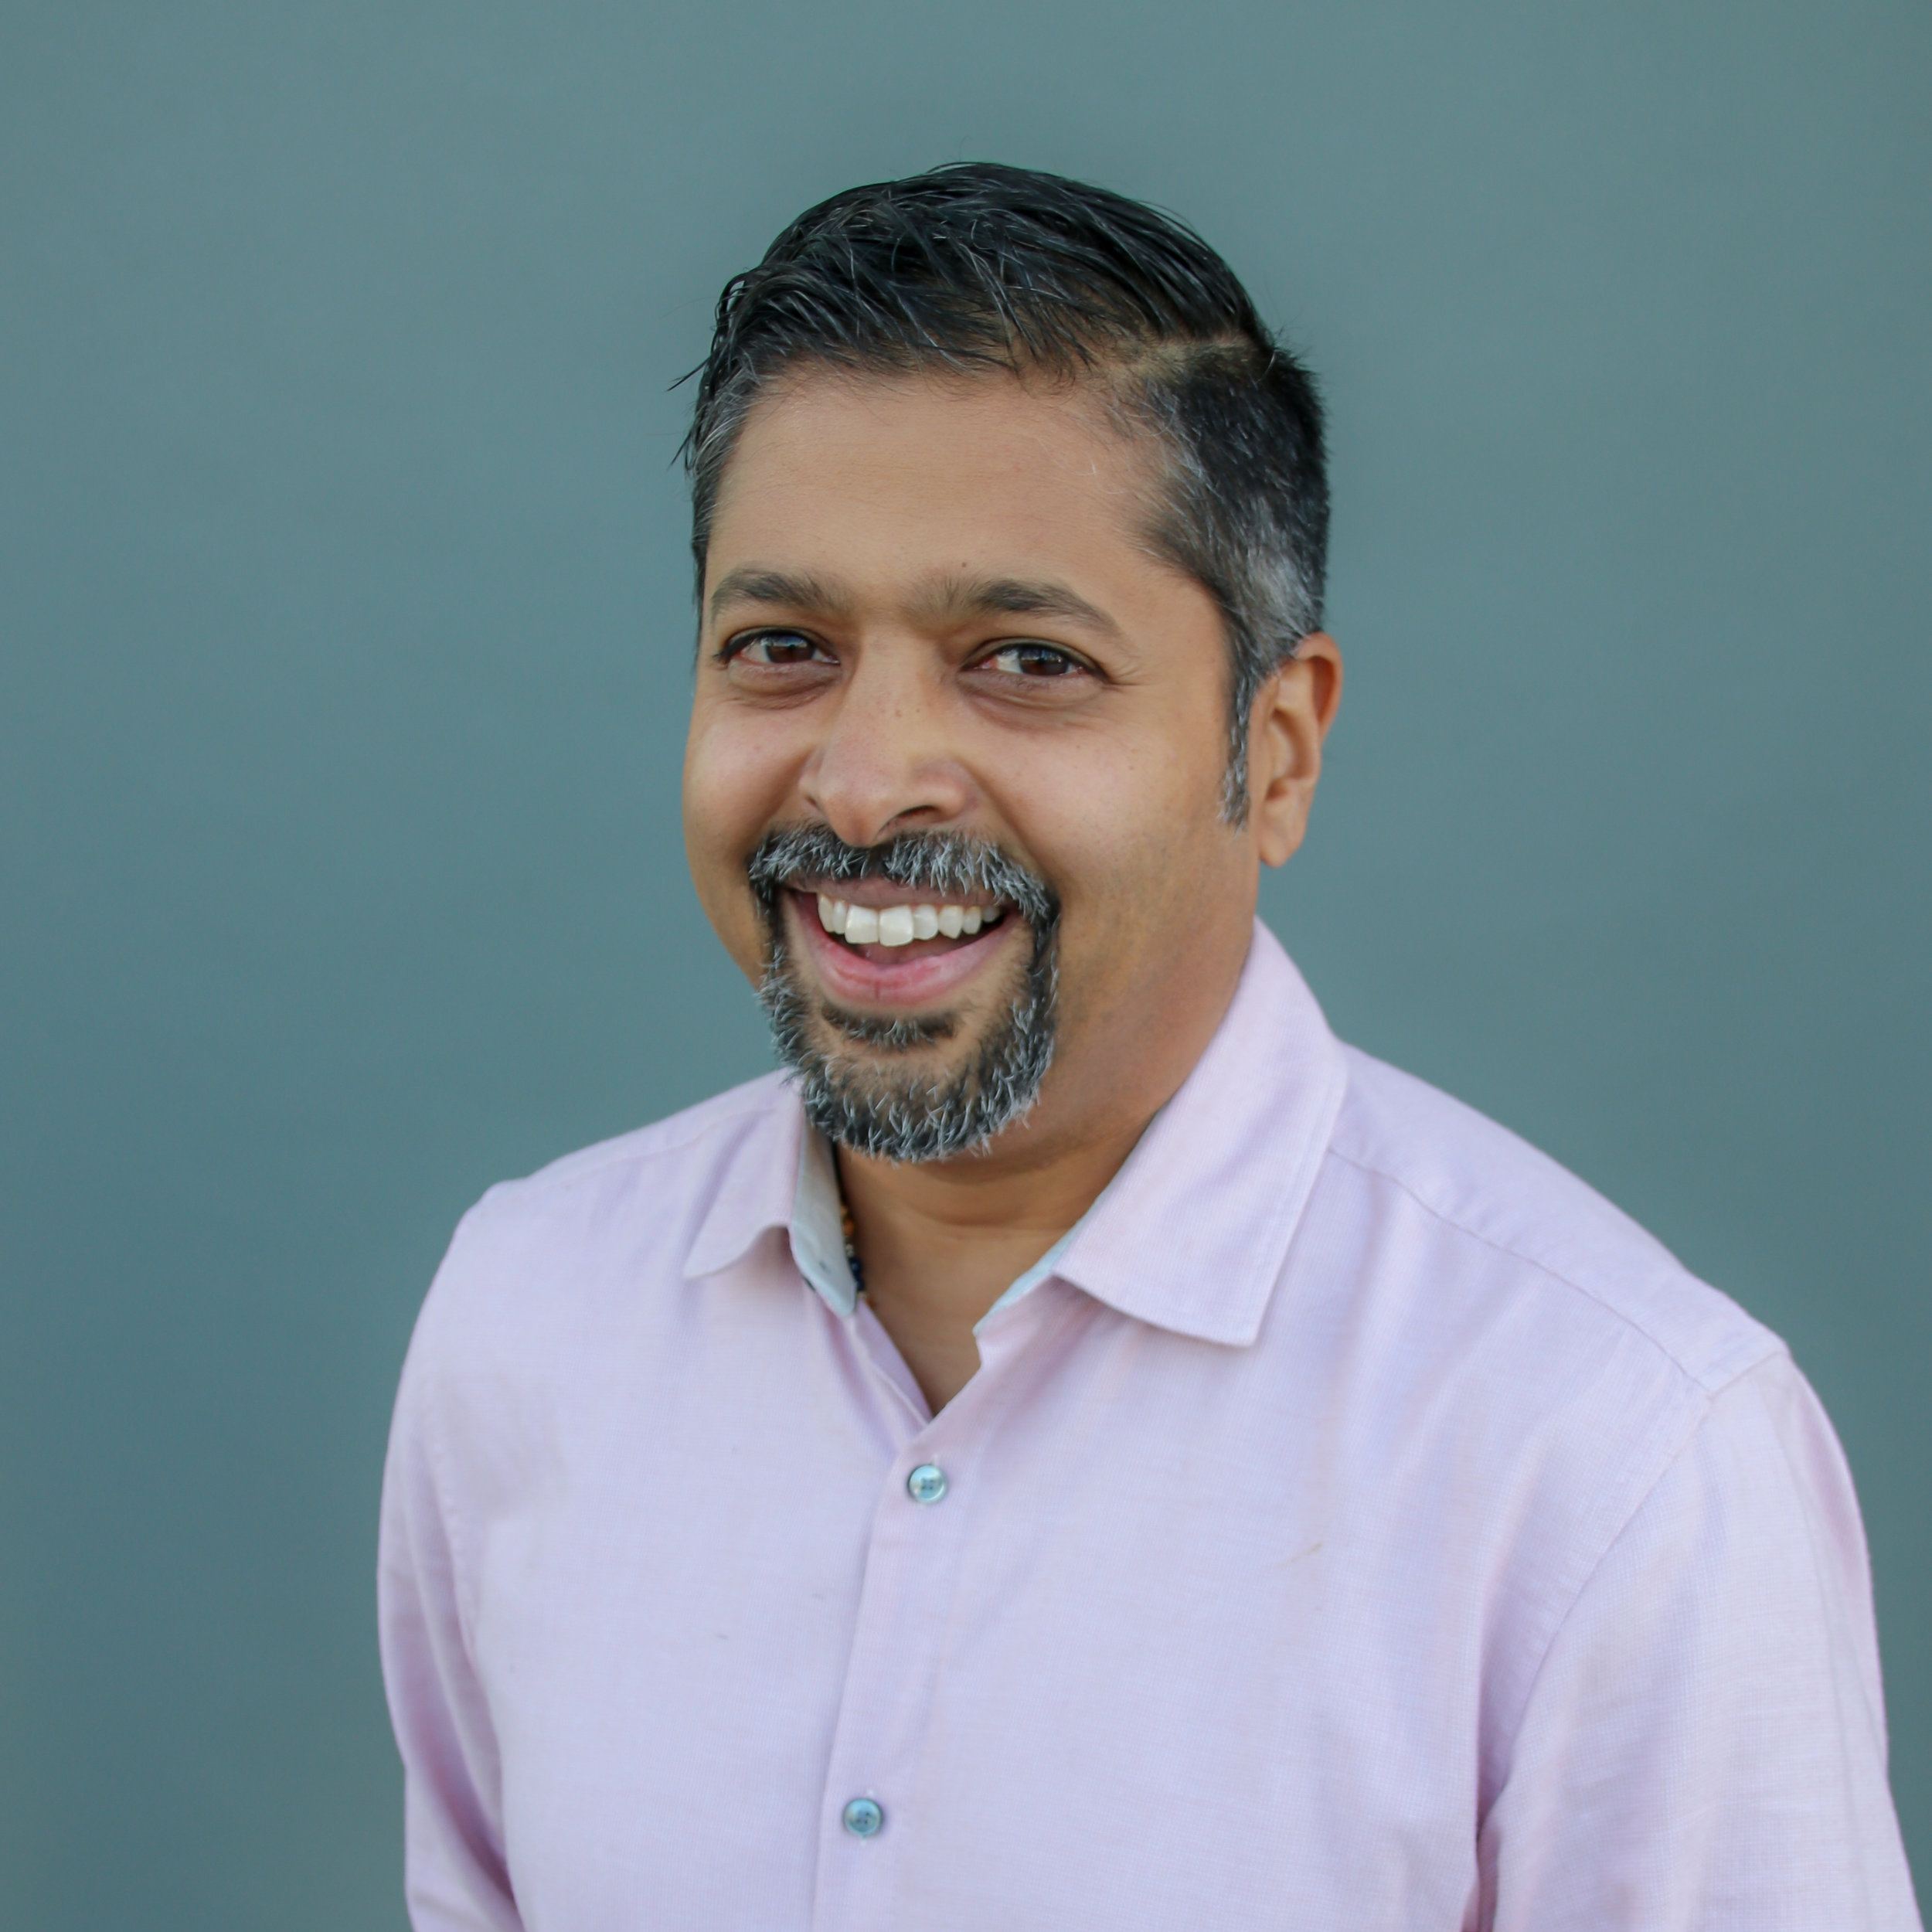 K.P. Reddy - K.P. is a serial entrepreneur with over 25 years of experience in disruptive innovation.